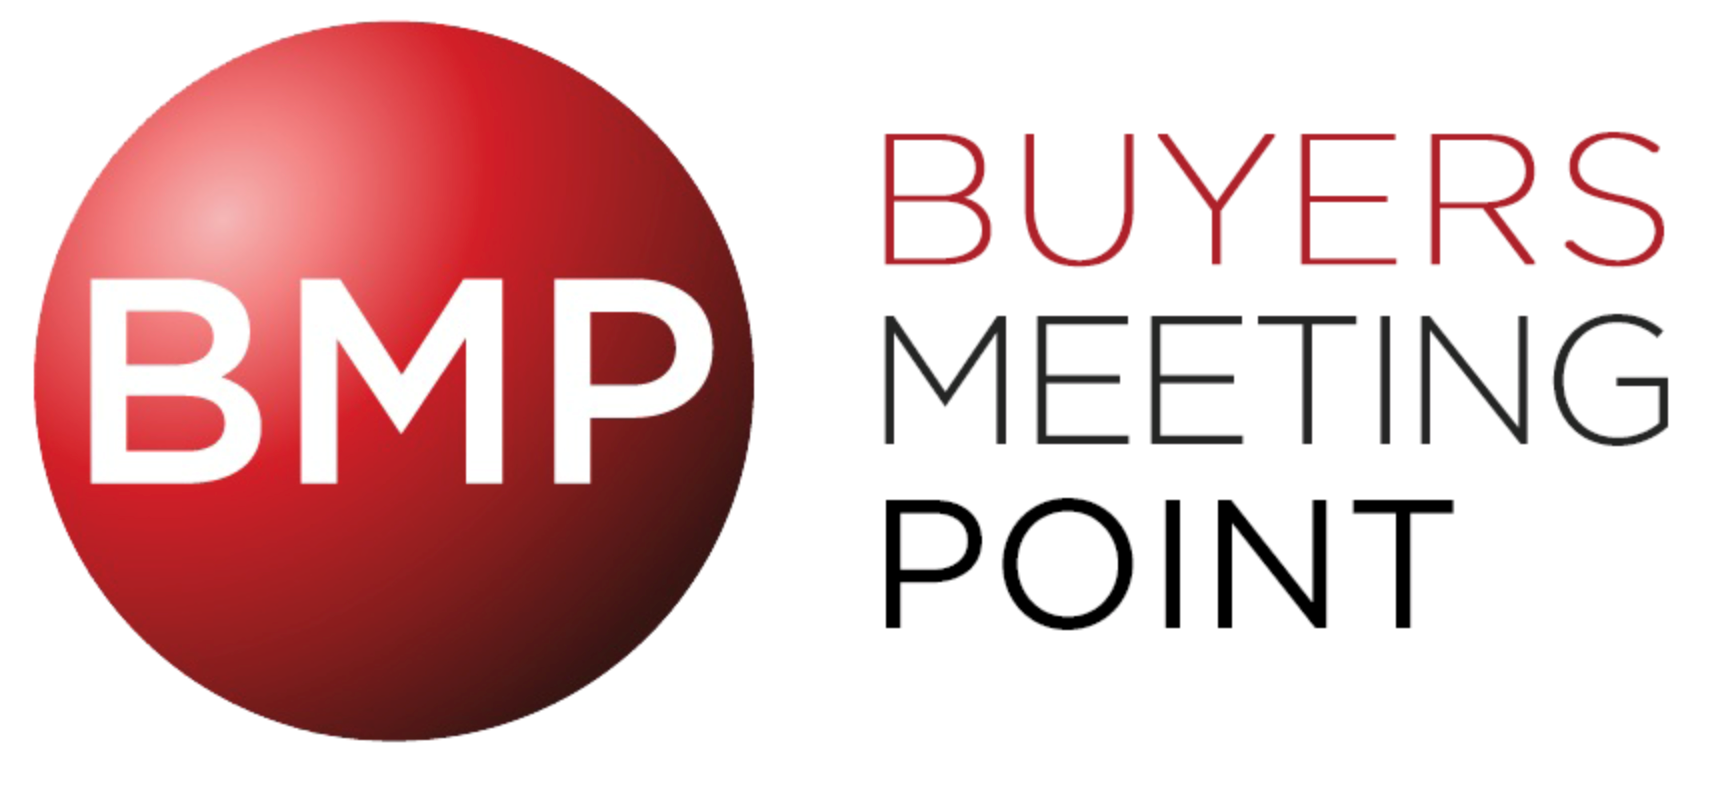 Buyers Meeting Point